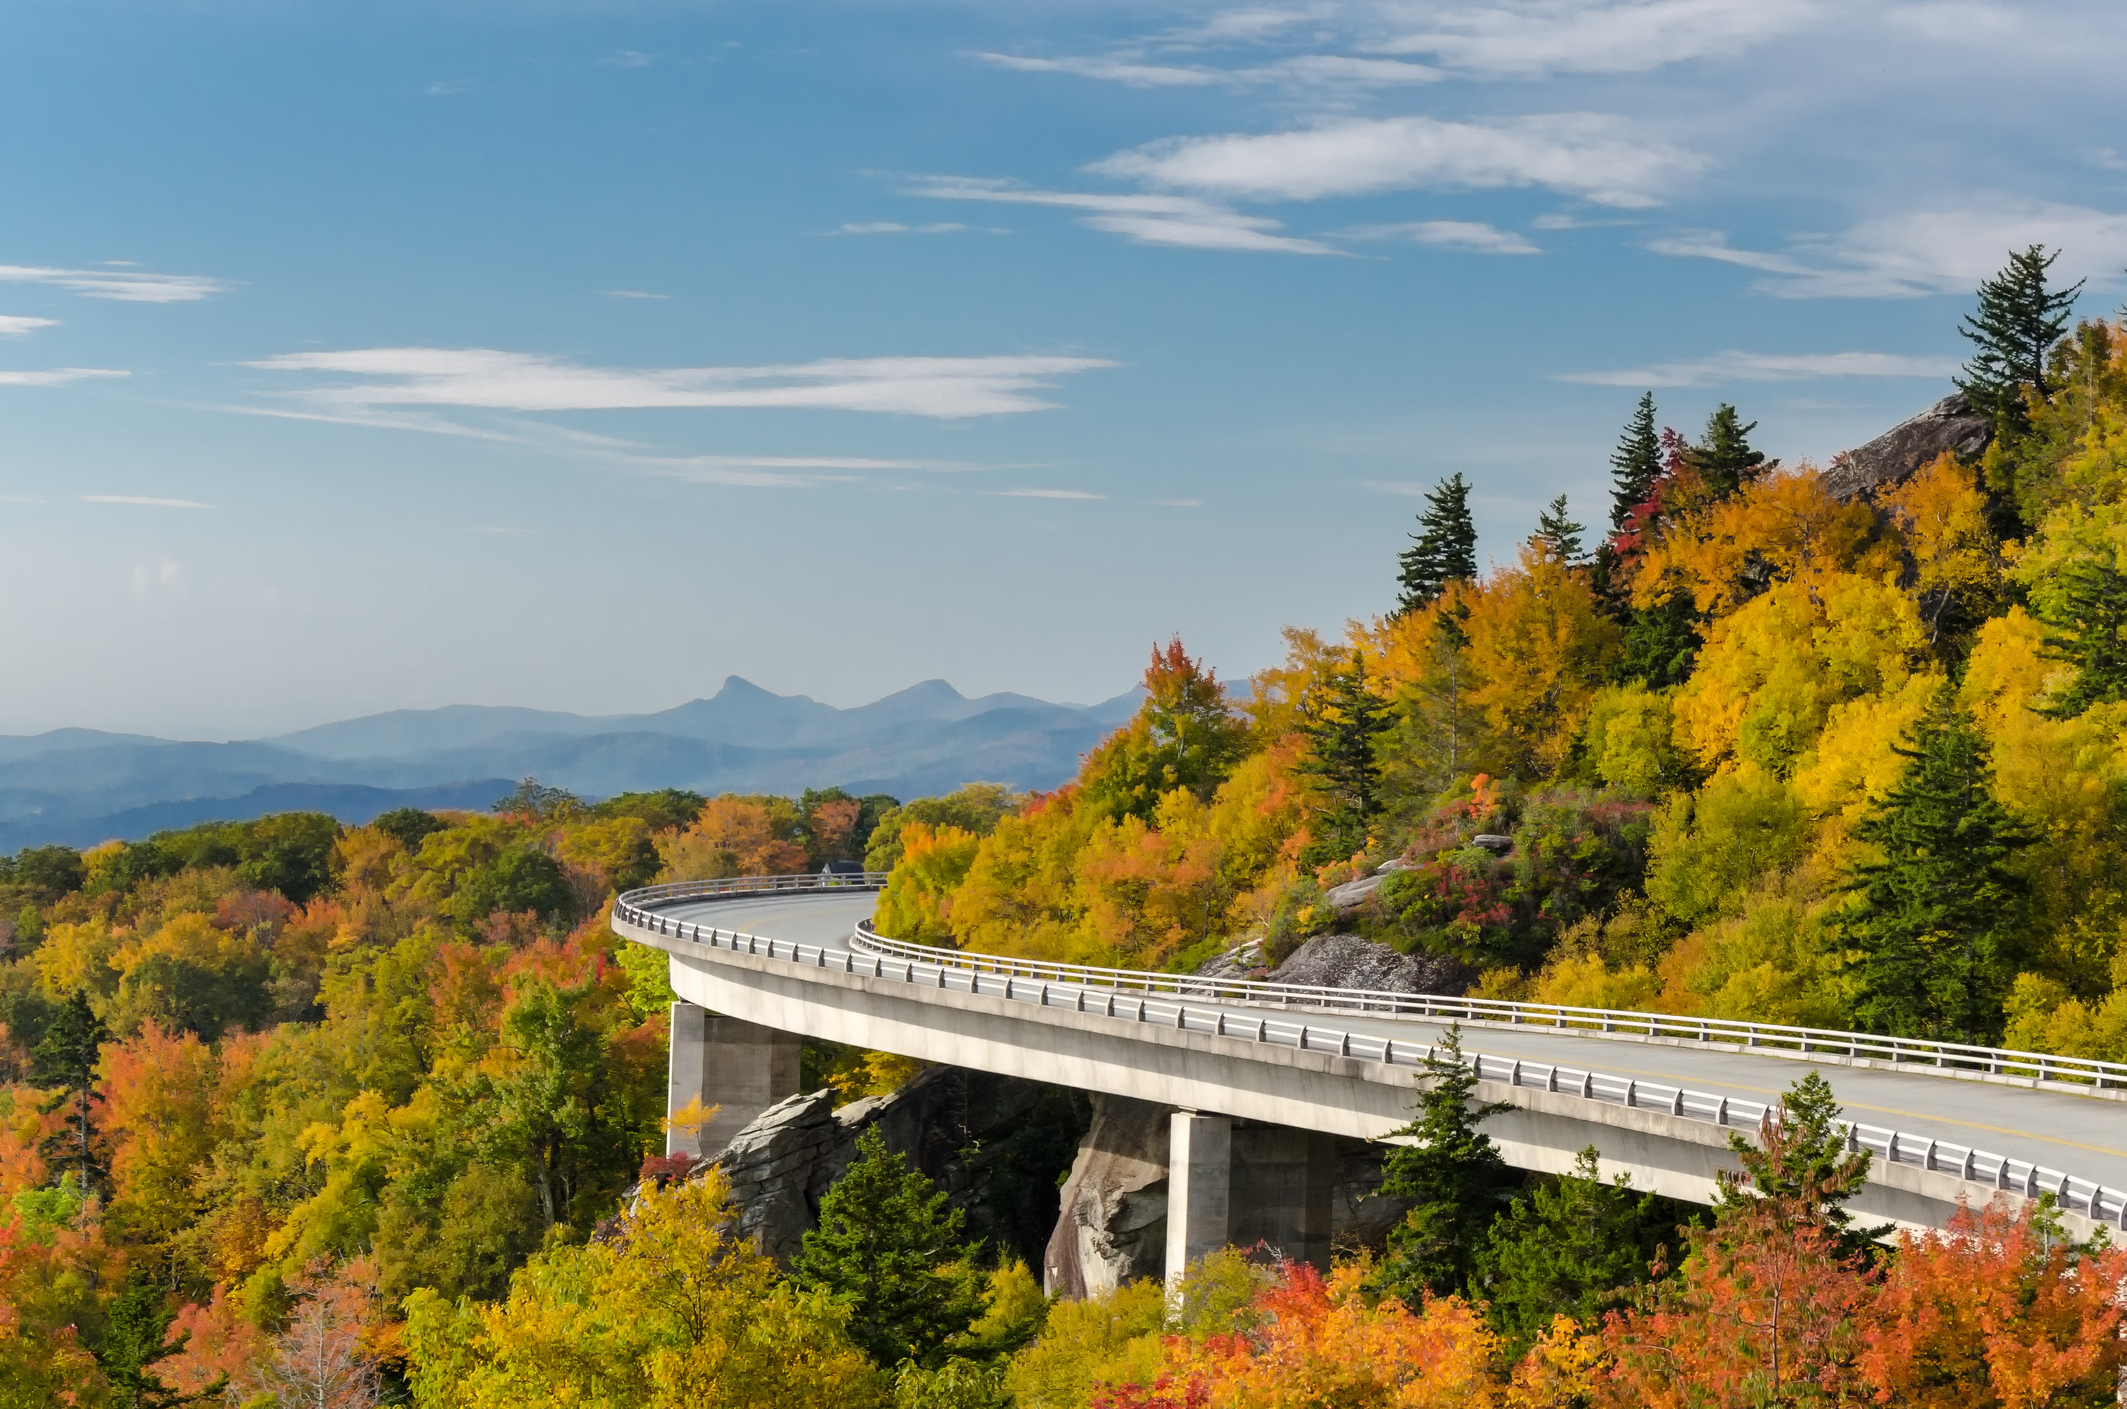 Top 5 Fall Destinations in the U.S.